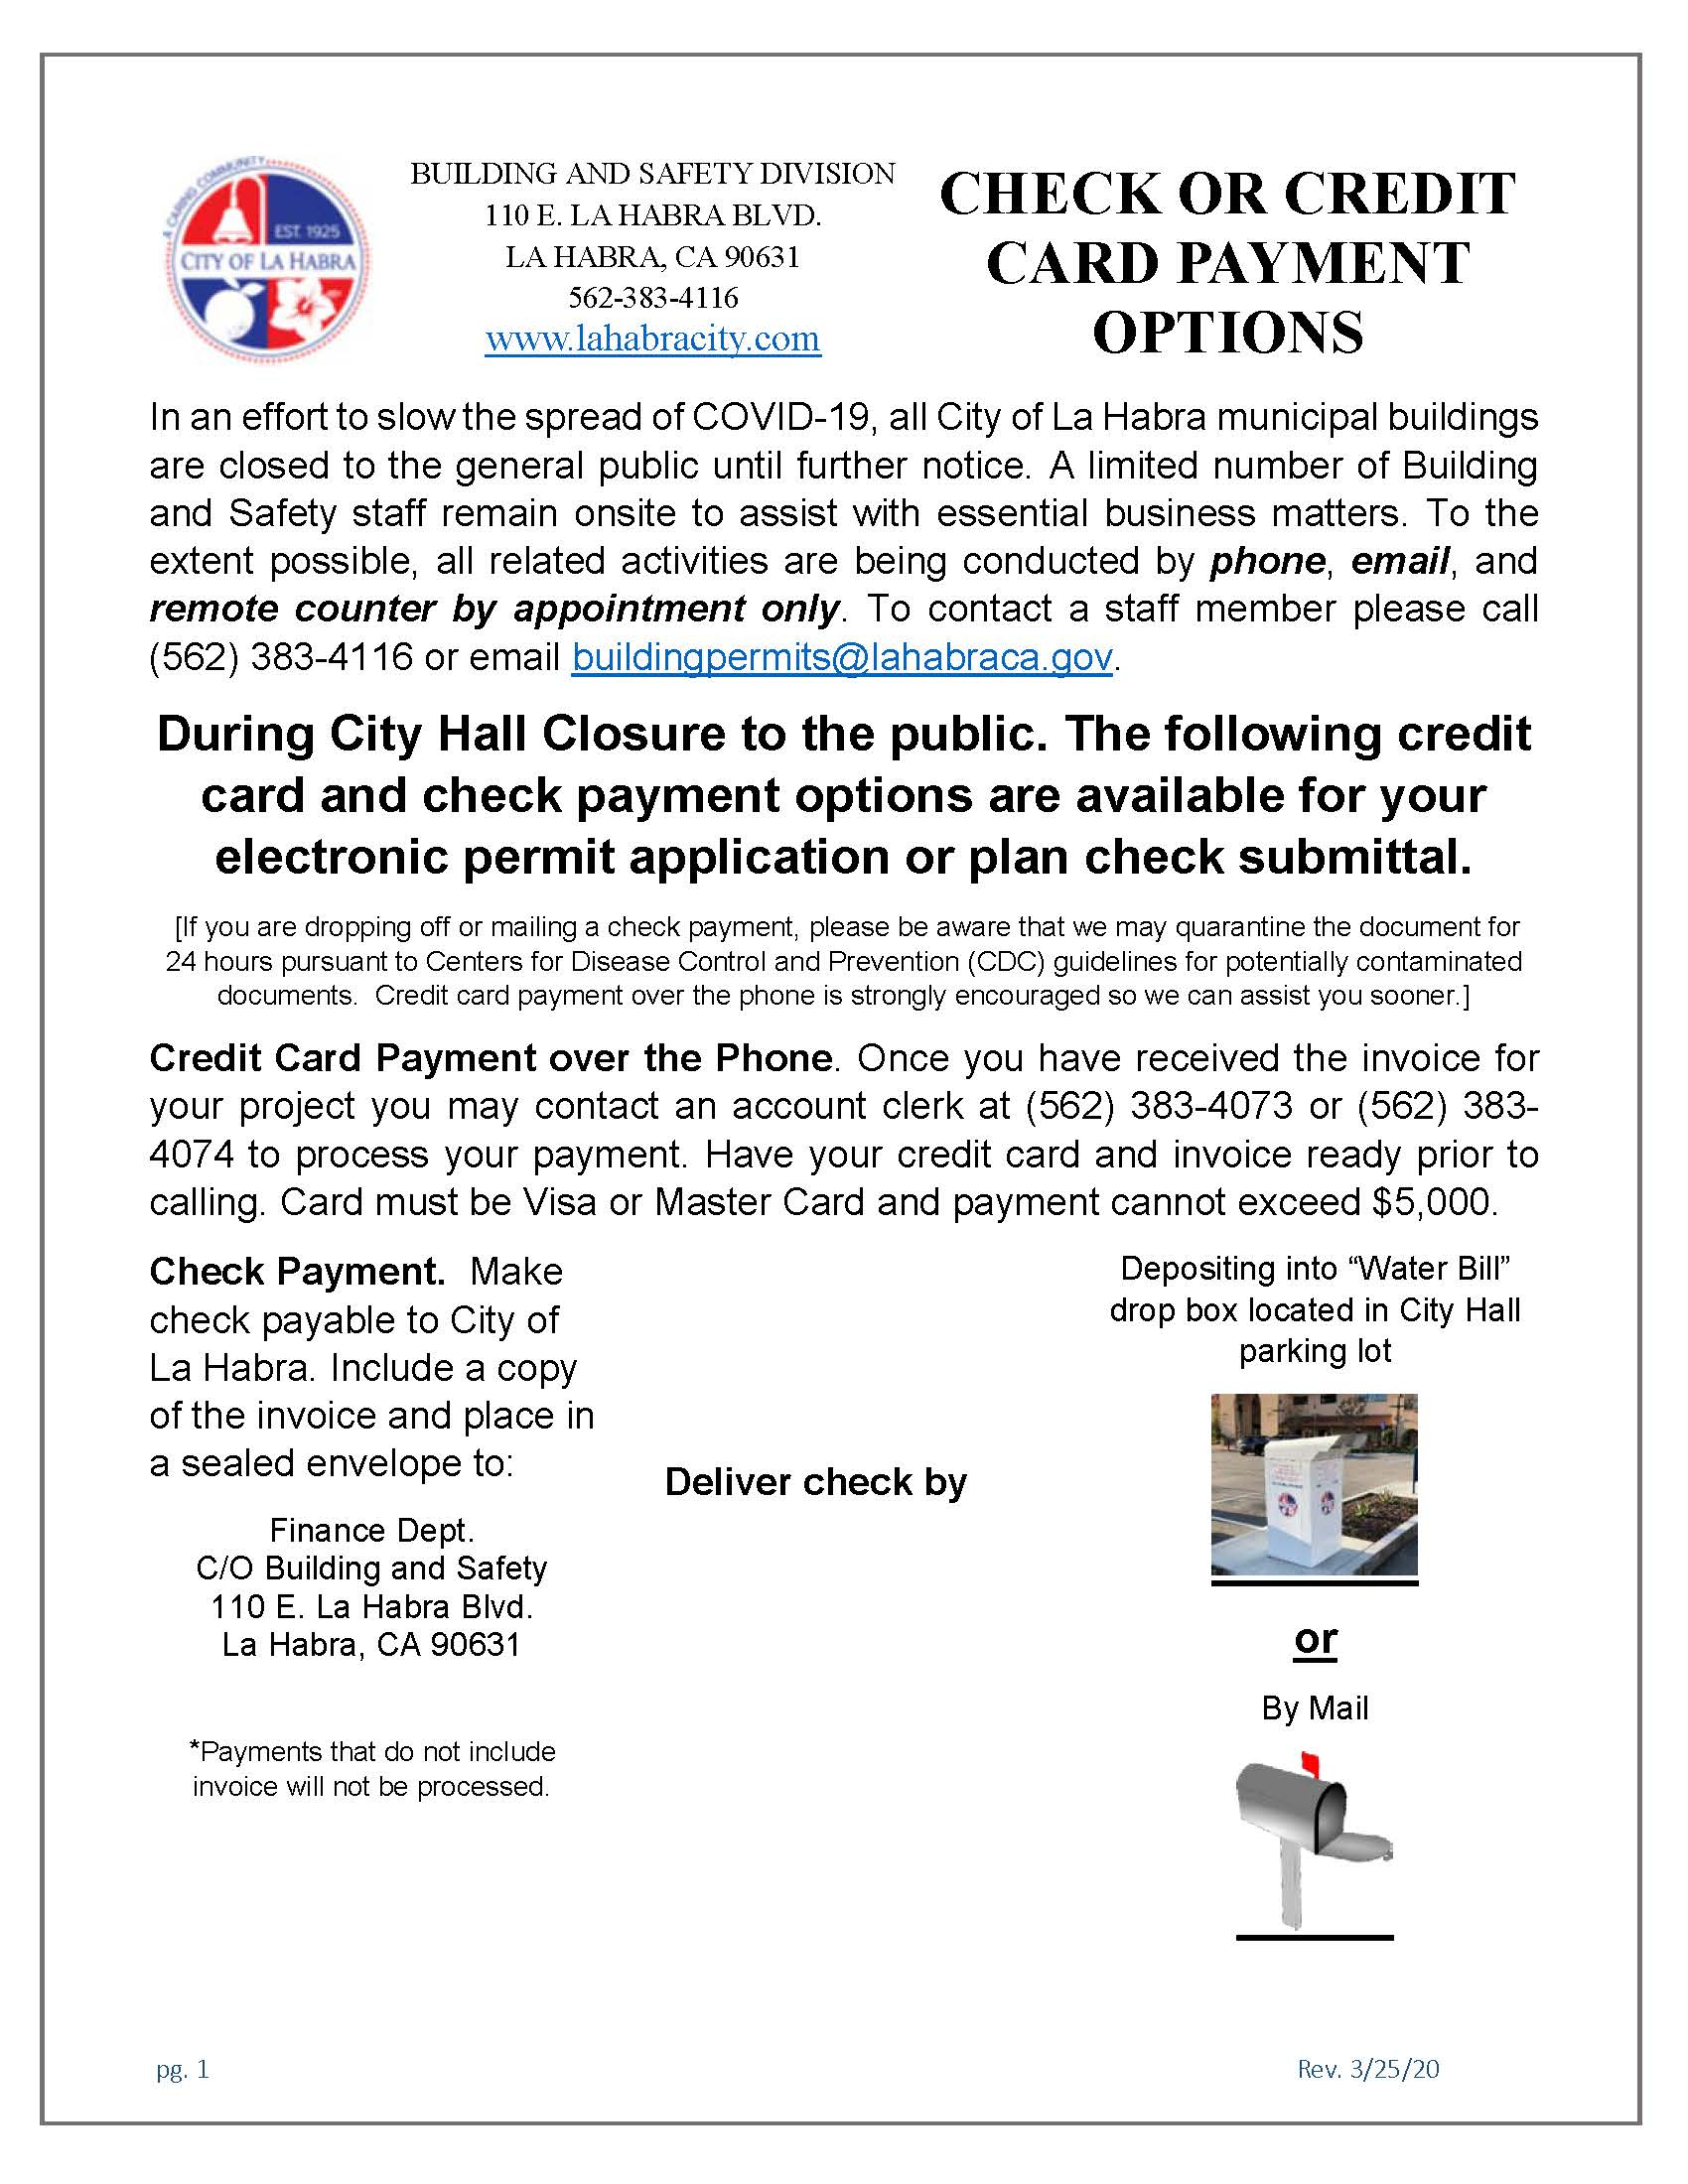 Check or Credit Card Payment Options PDF